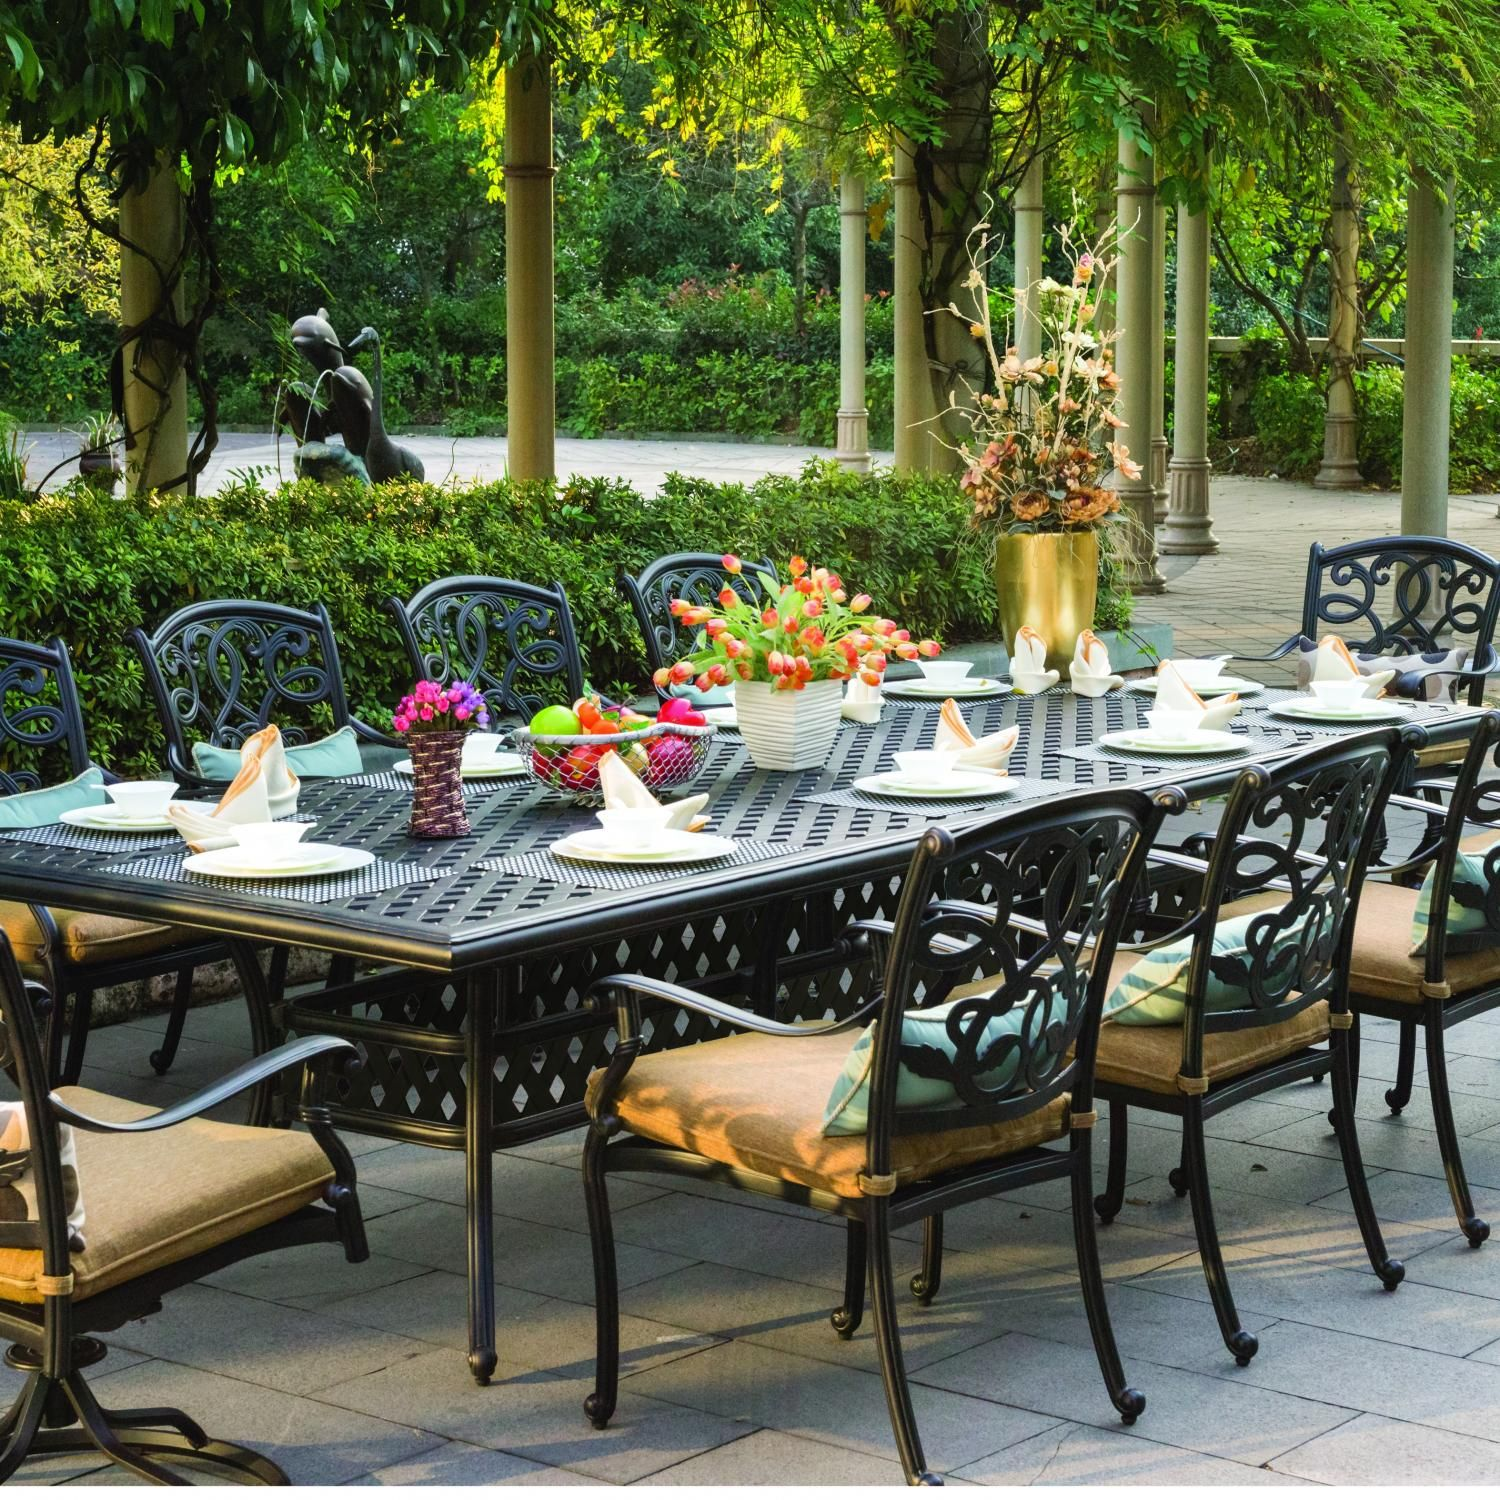 Darlee Santa Monica 10 Person Cast Aluminum Patio Dining Set Available At Ultimate  Patio.